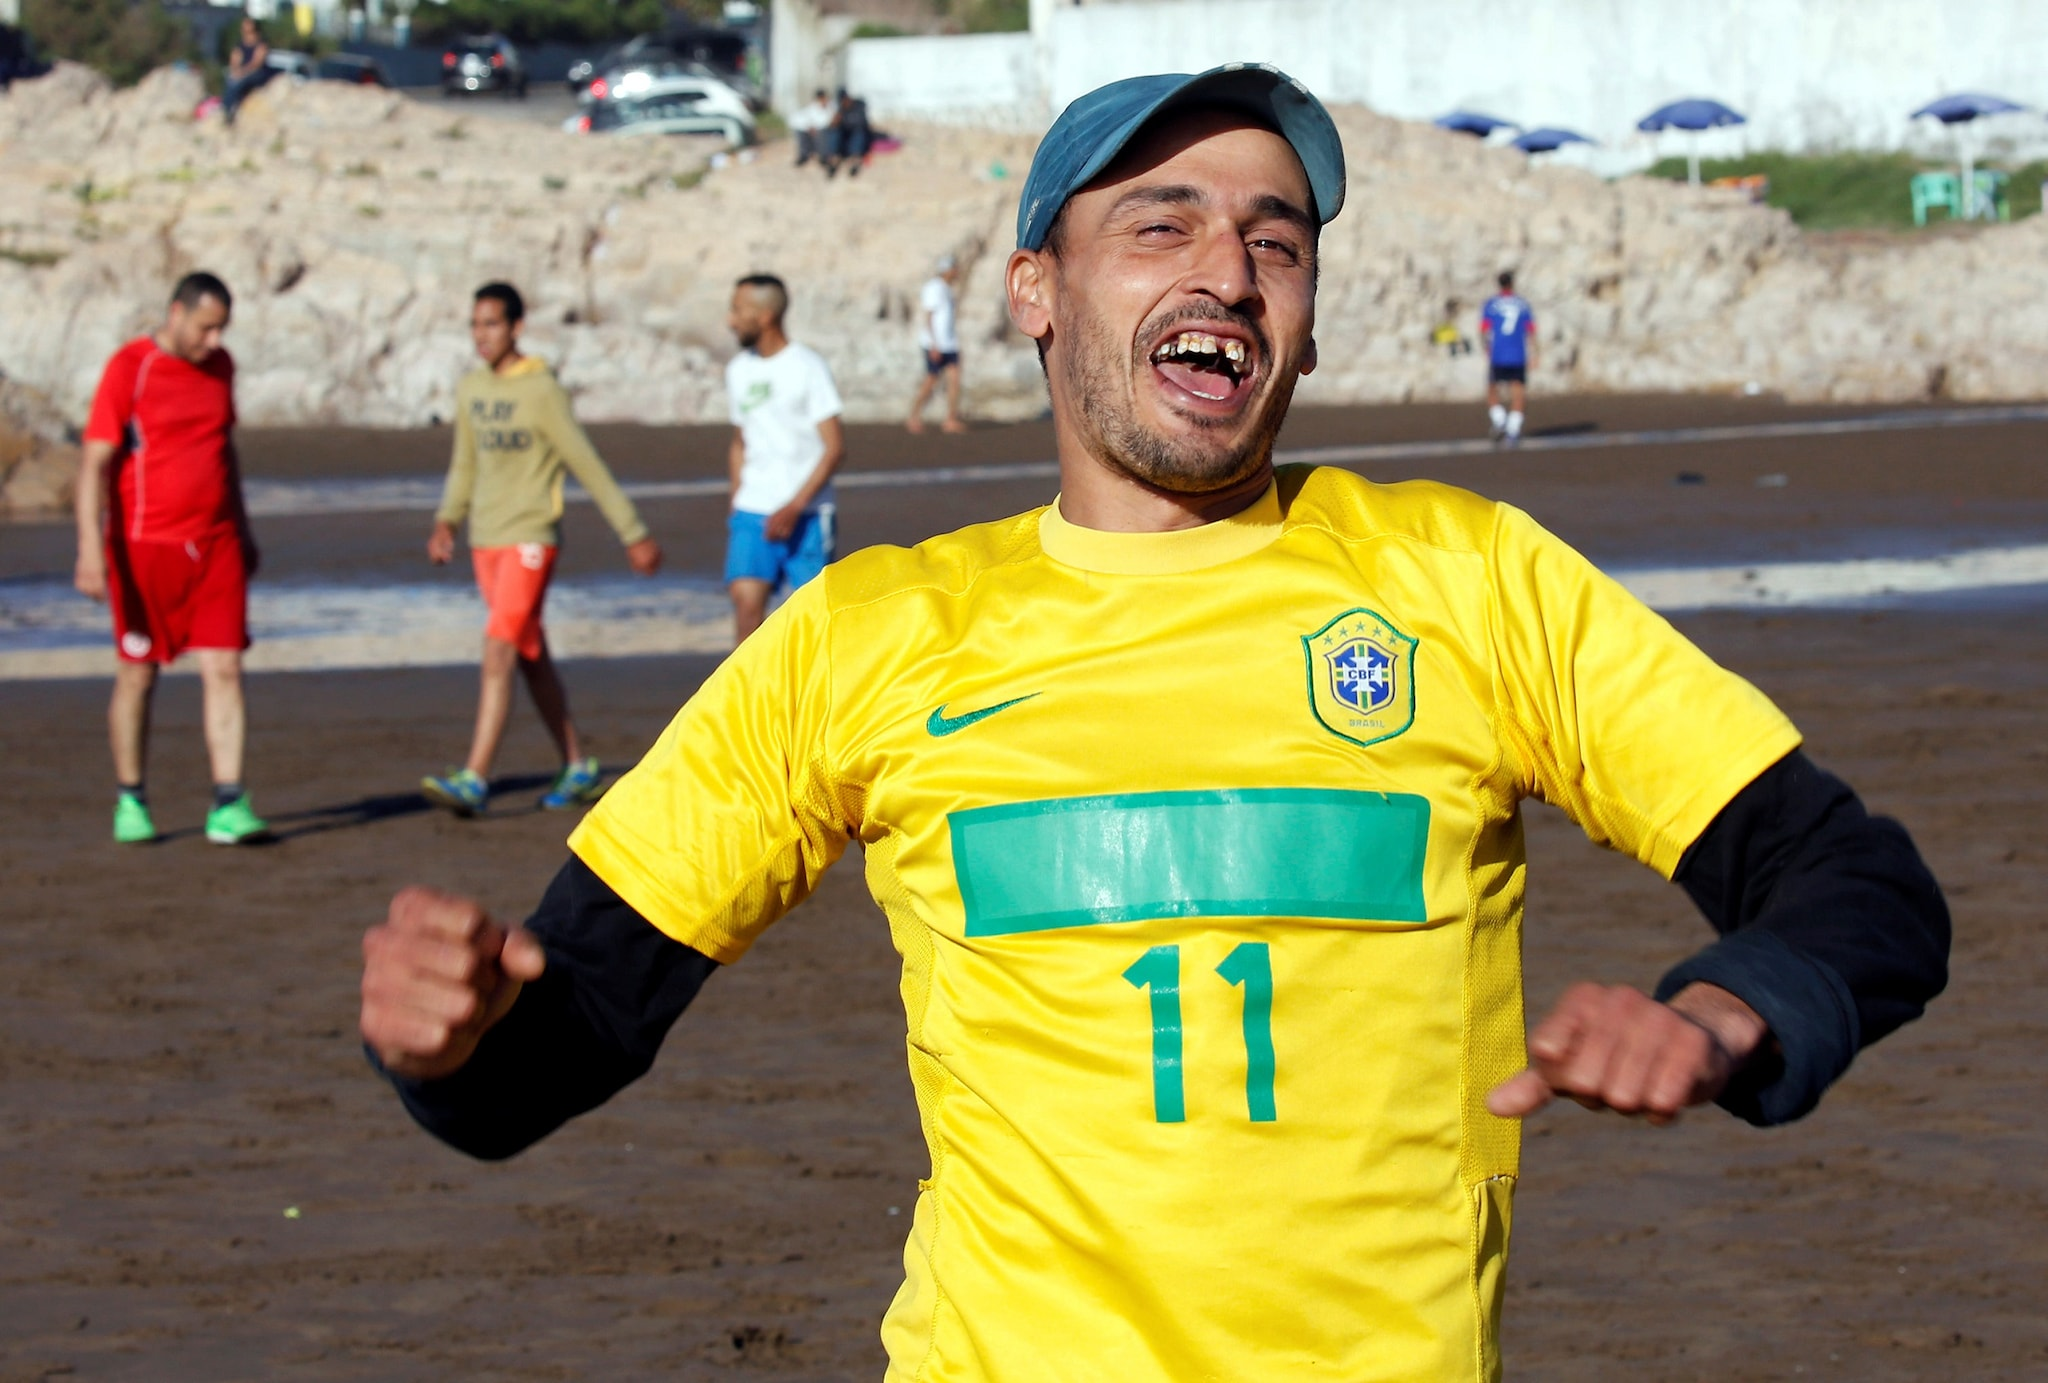 A soccer player celebrates scoring a goal on a beach in Casablanca, Morocco April 29, 2018. REUTERS/Youssef Boudlal/Files